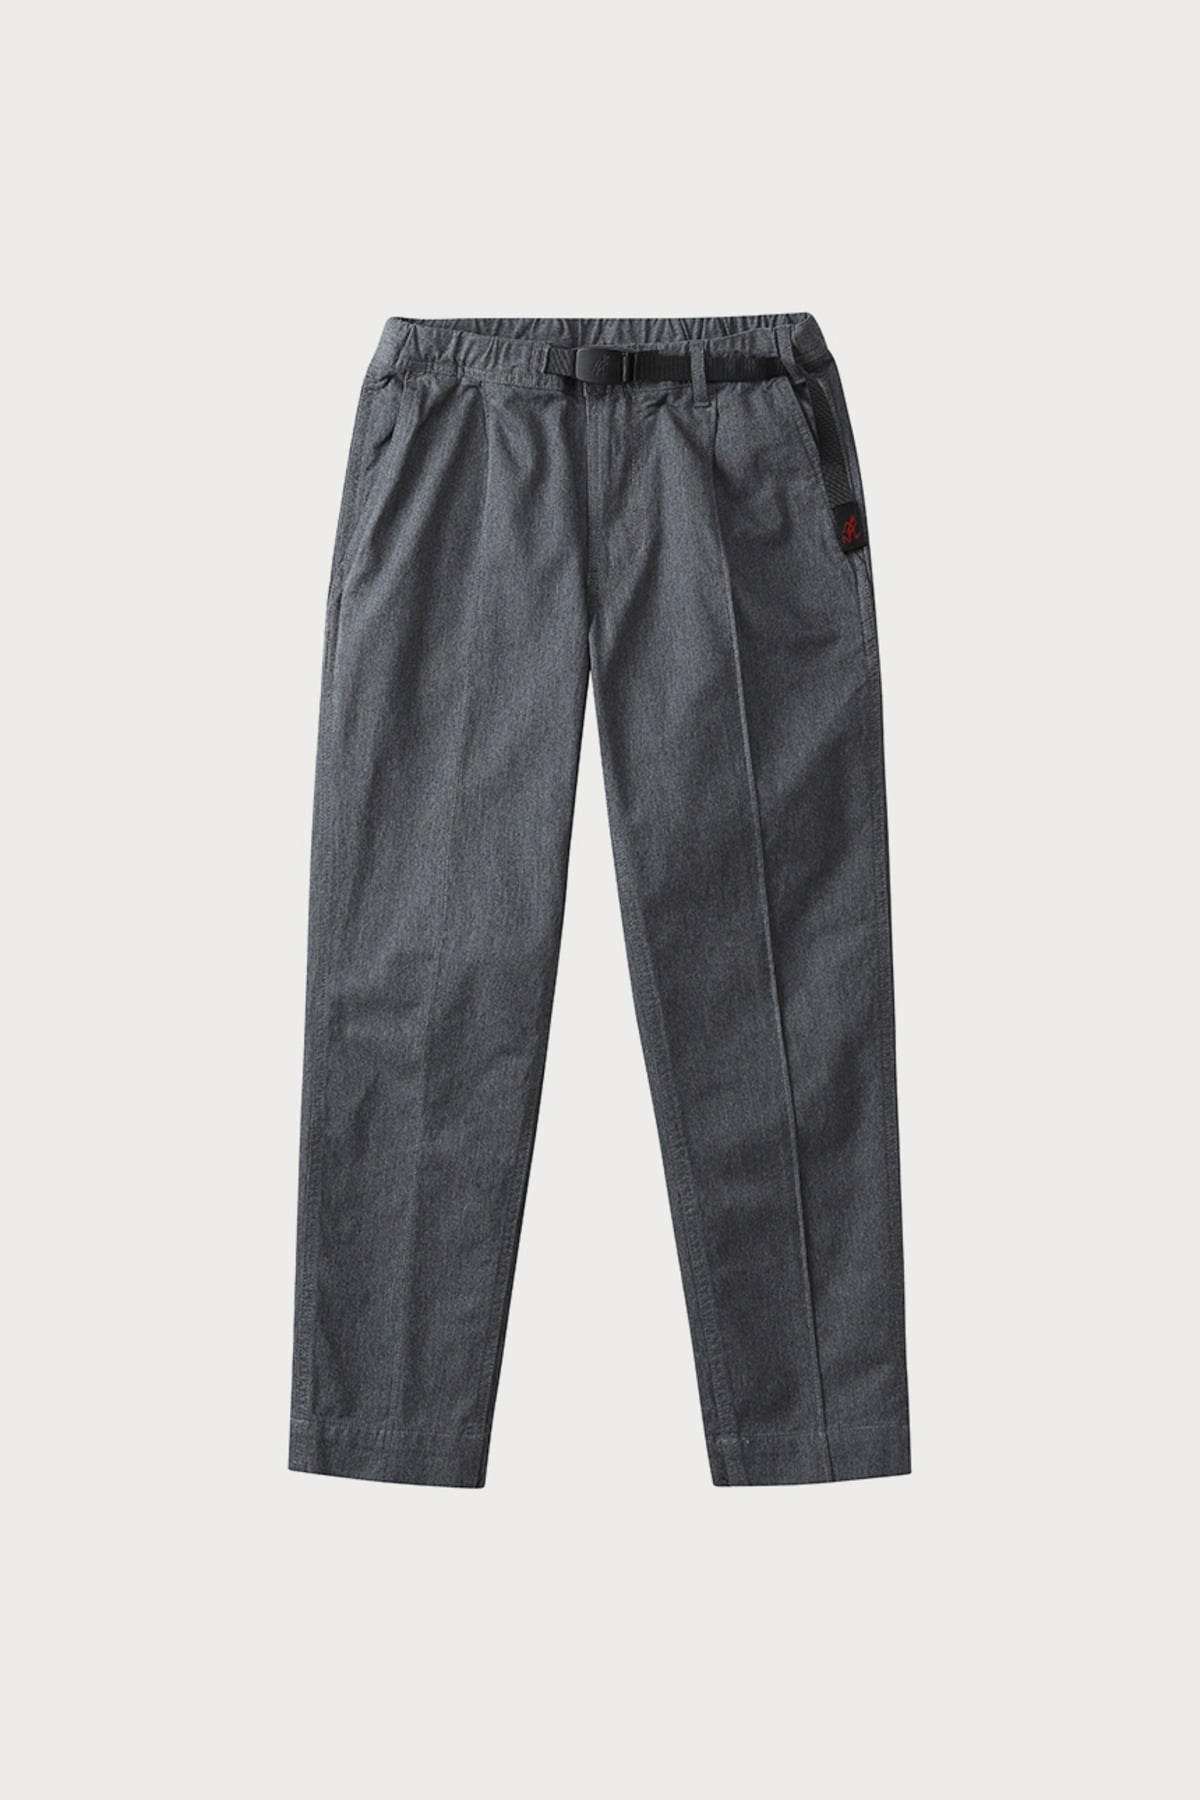 PINTUCK PANTS HEATHER GREY